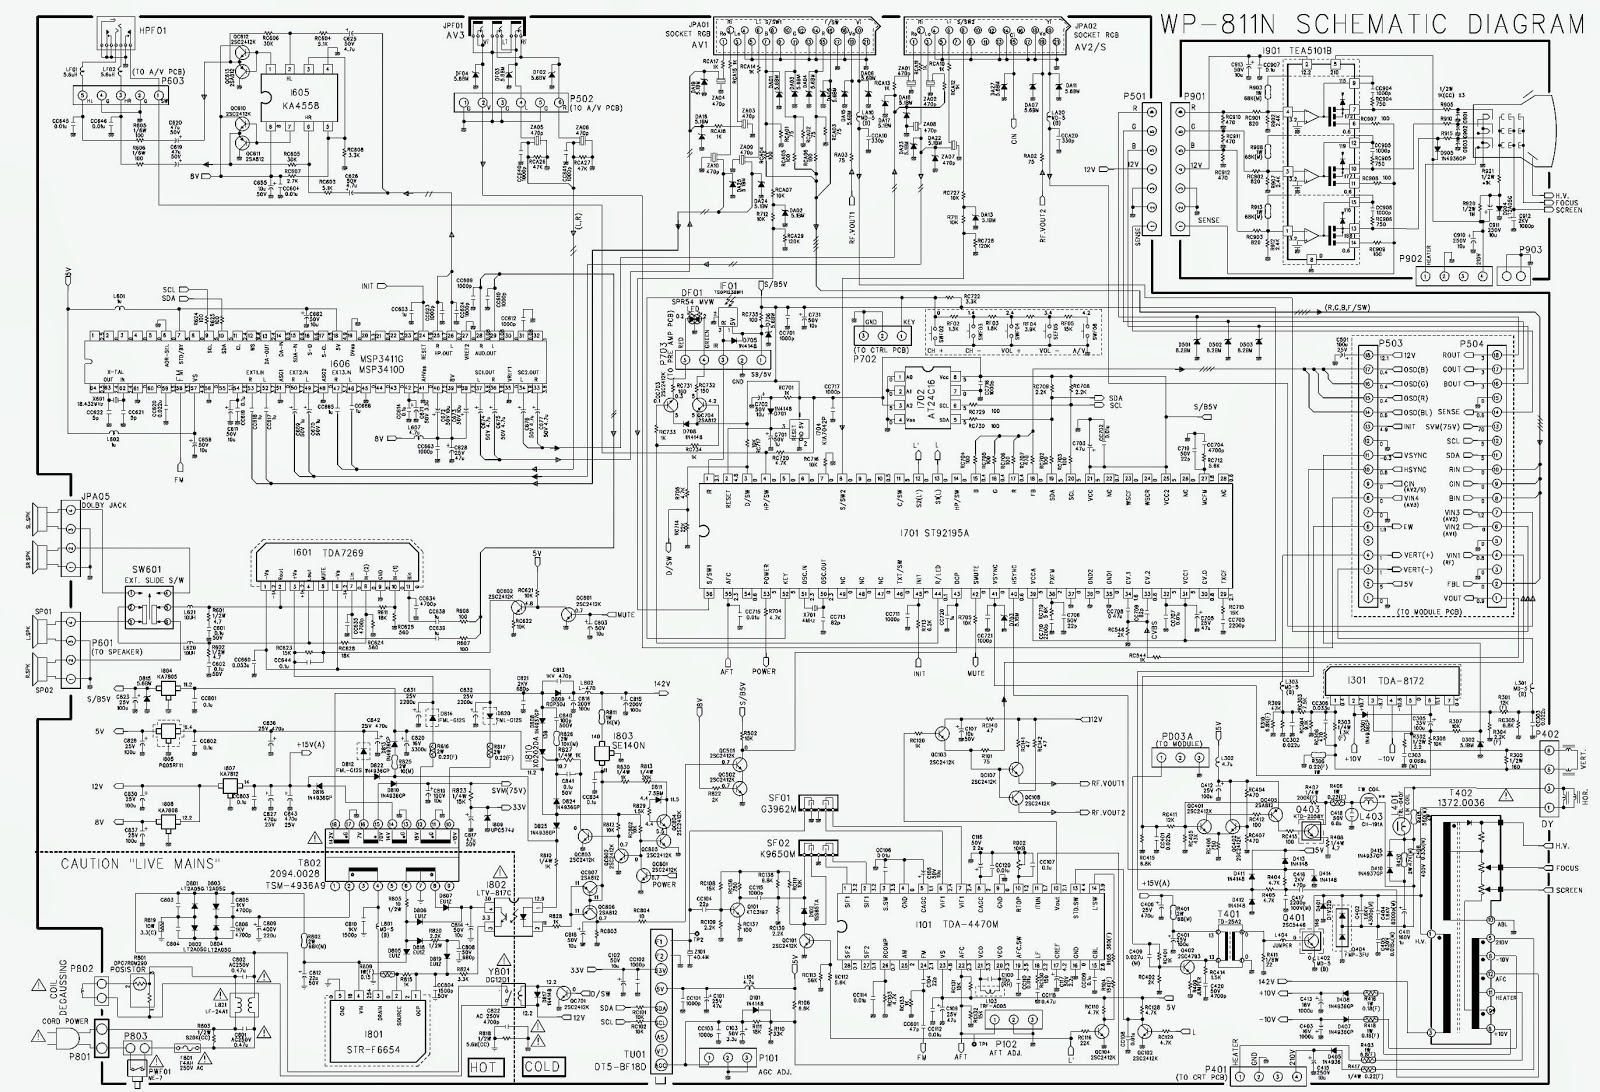 Daewoo 28 inch crt tv how to enter service mode circuit diagram schematic diagram ccuart Images